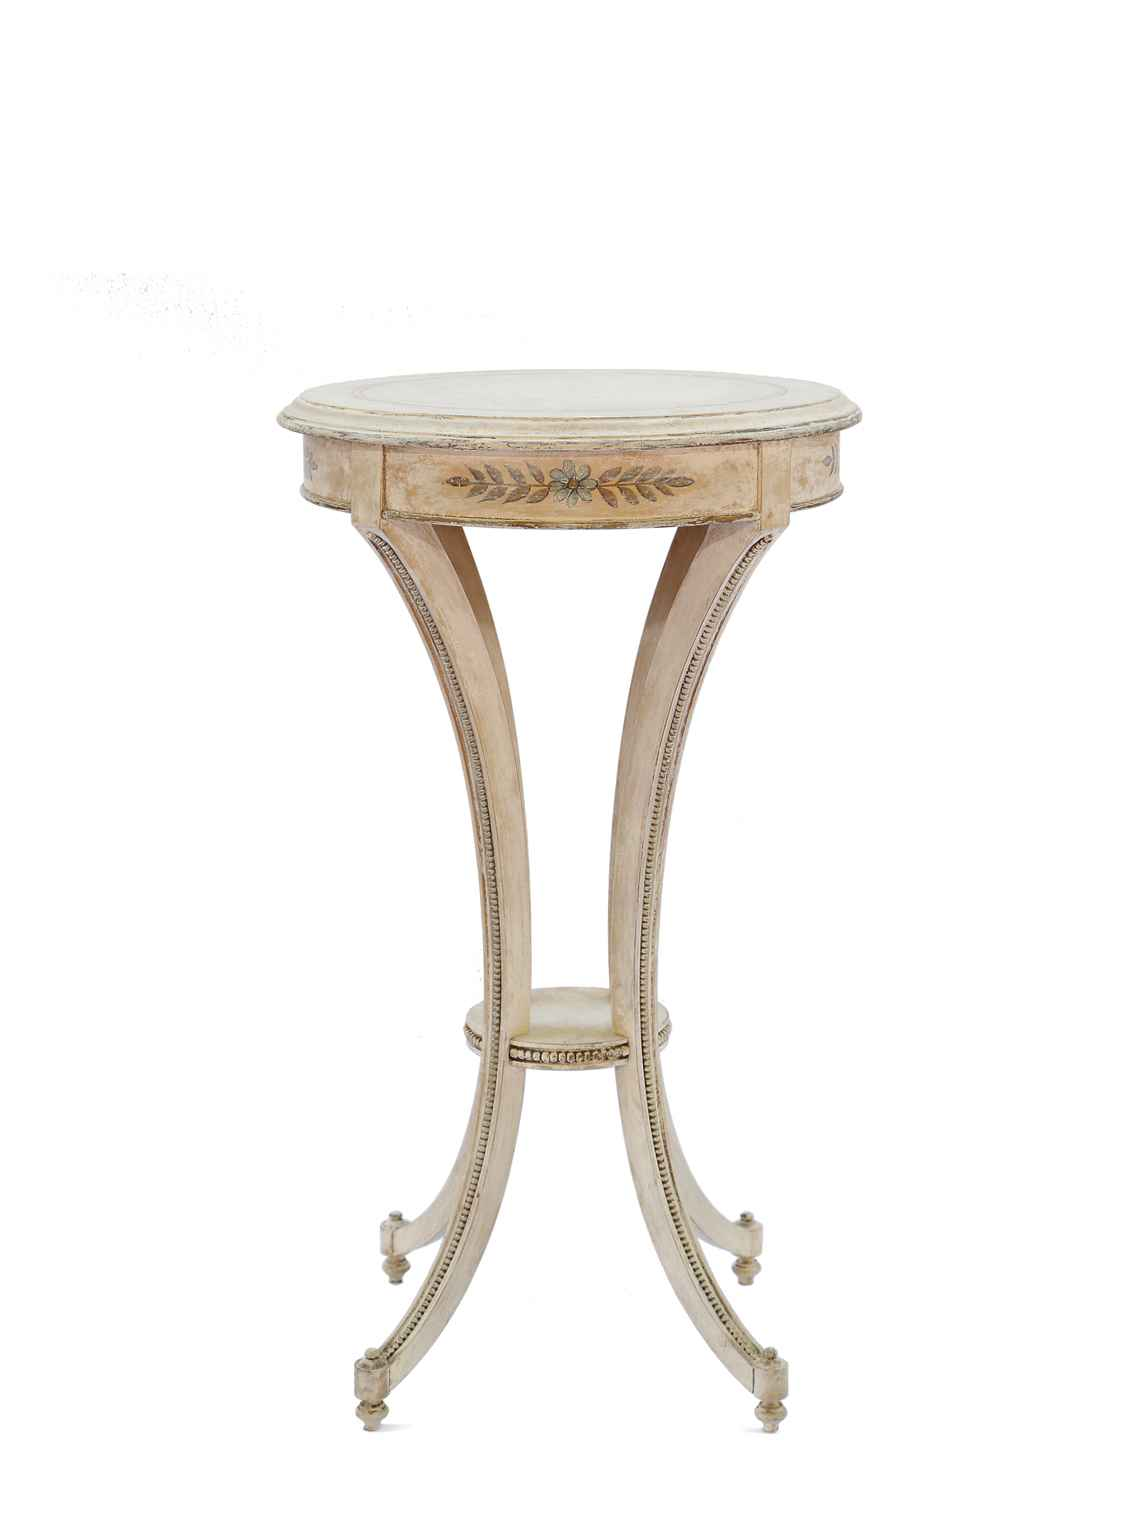 painted candlestand accent table james jeffrey antiques metal italian living room side decor furniture painting laminate cabinets patio coffee with storage west elm stools